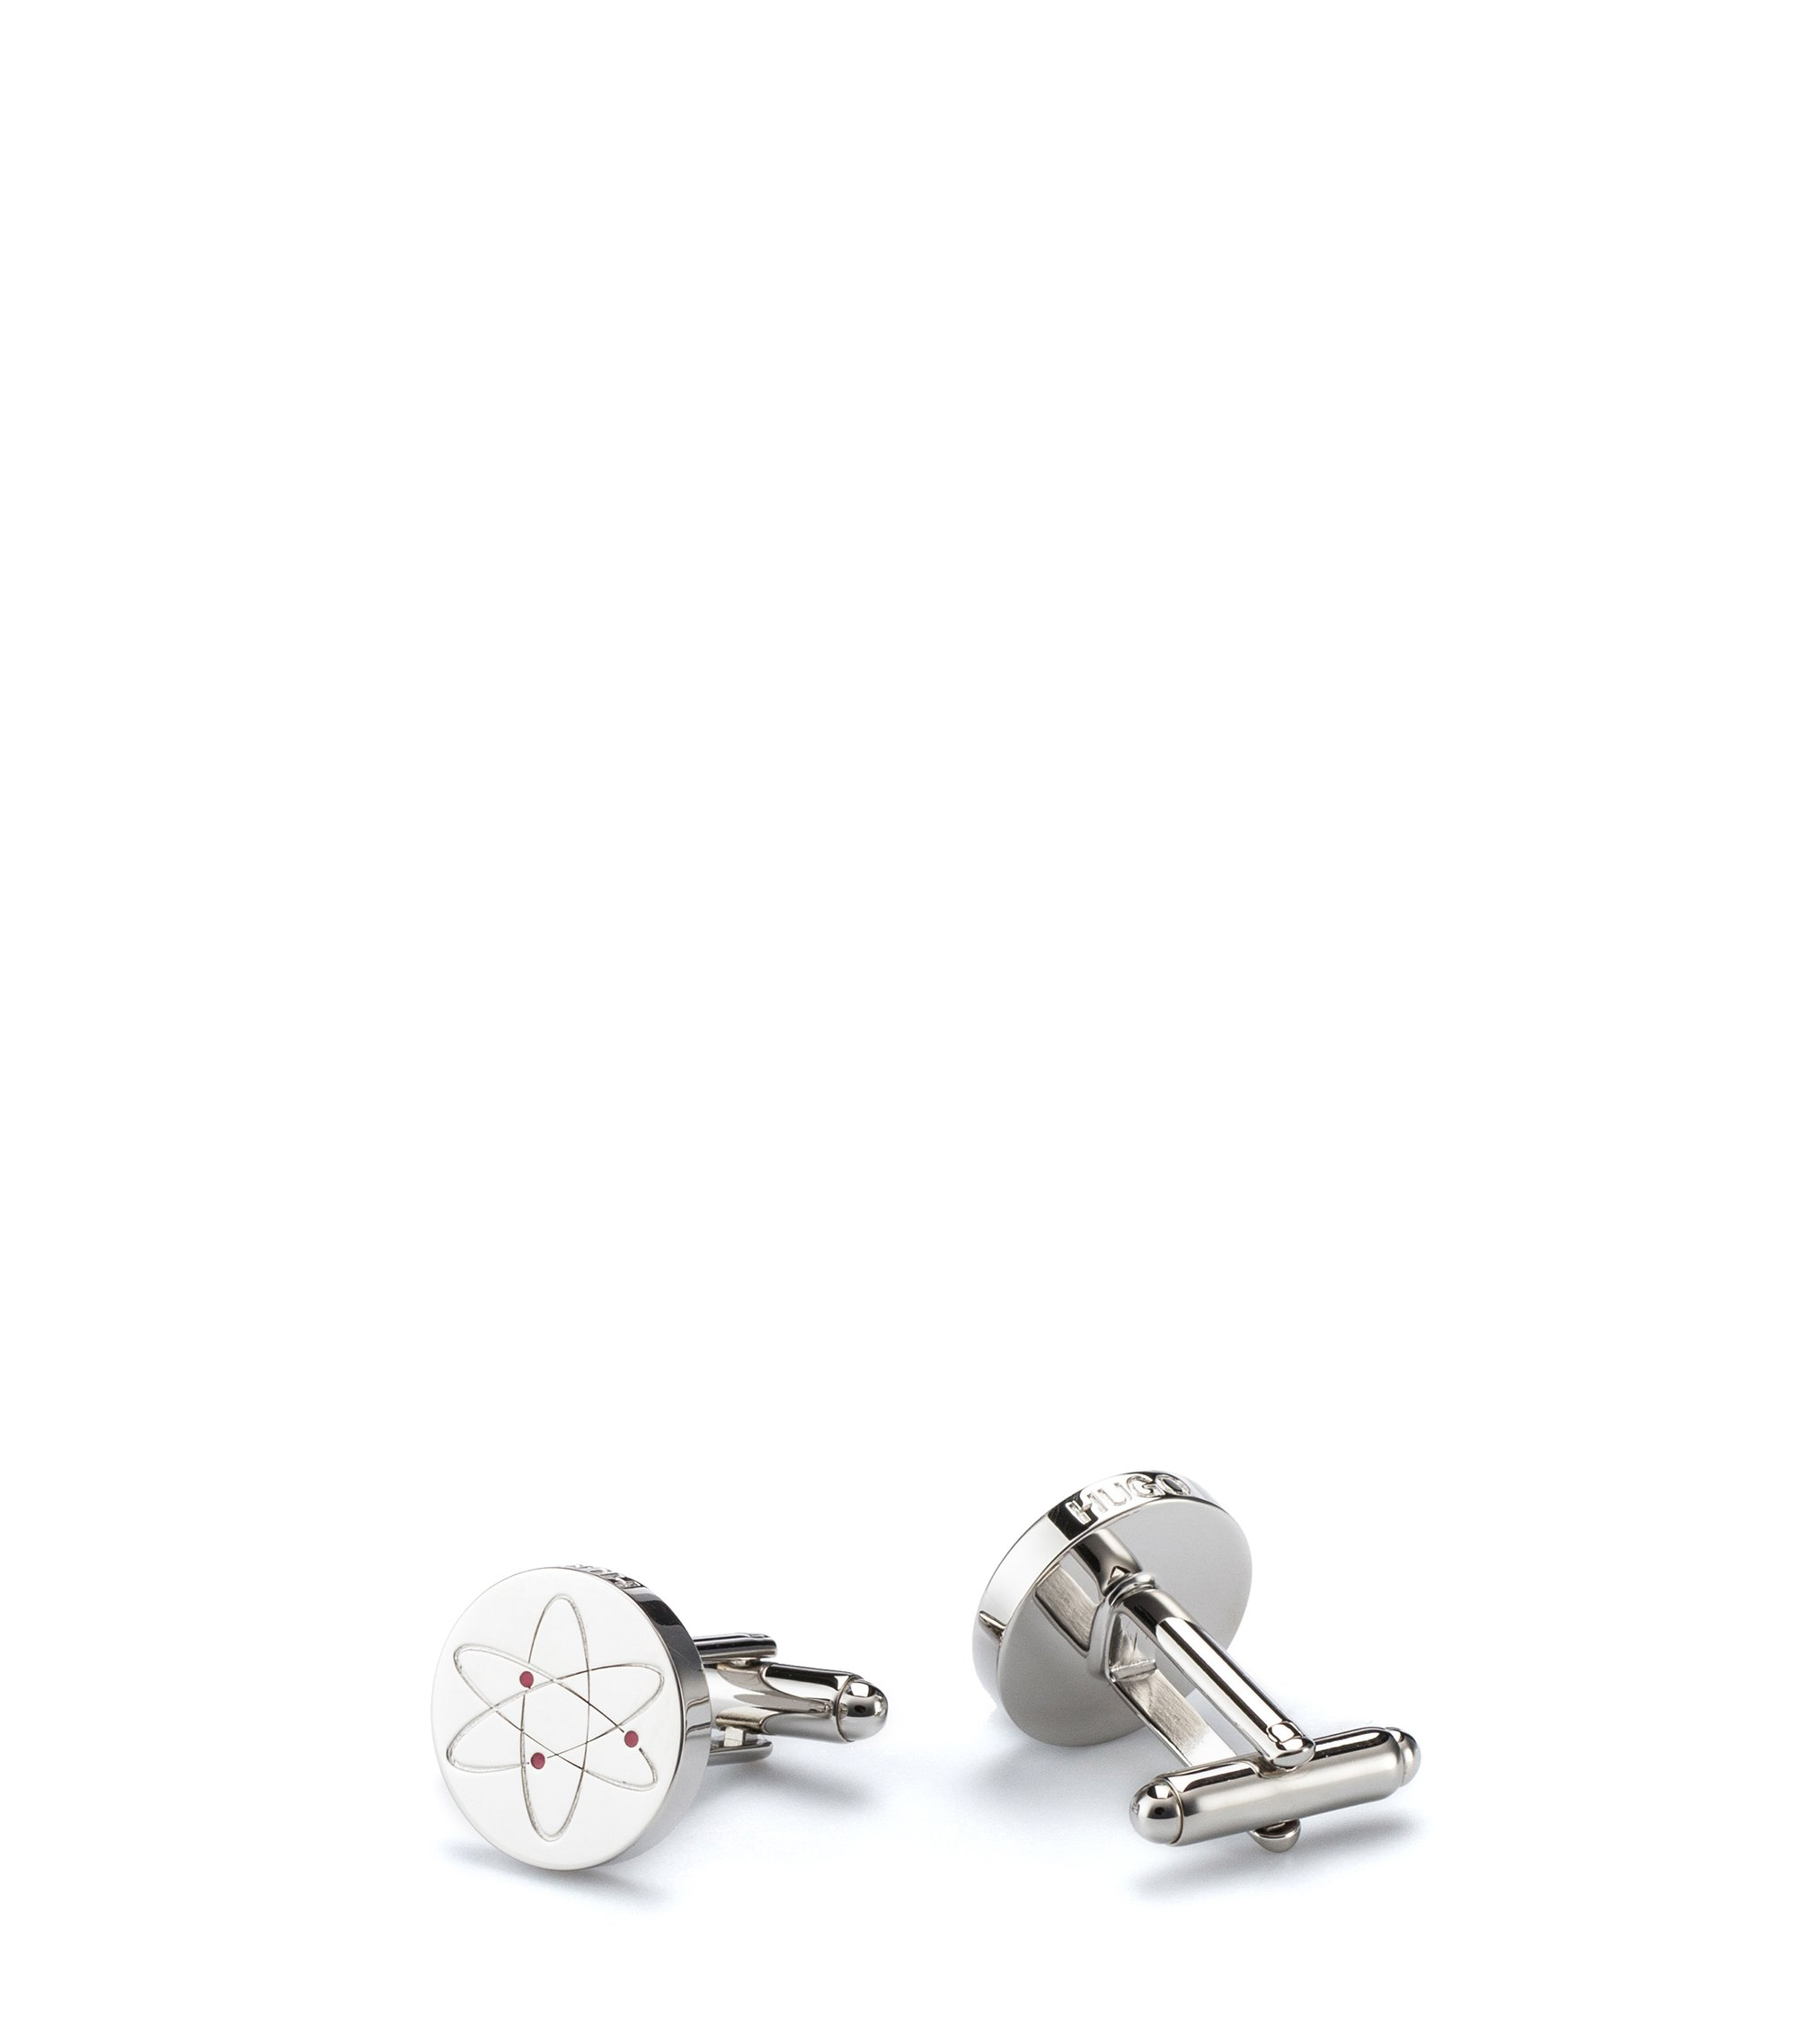 Polished-brass cufflinks with colored enamel detail, Silver